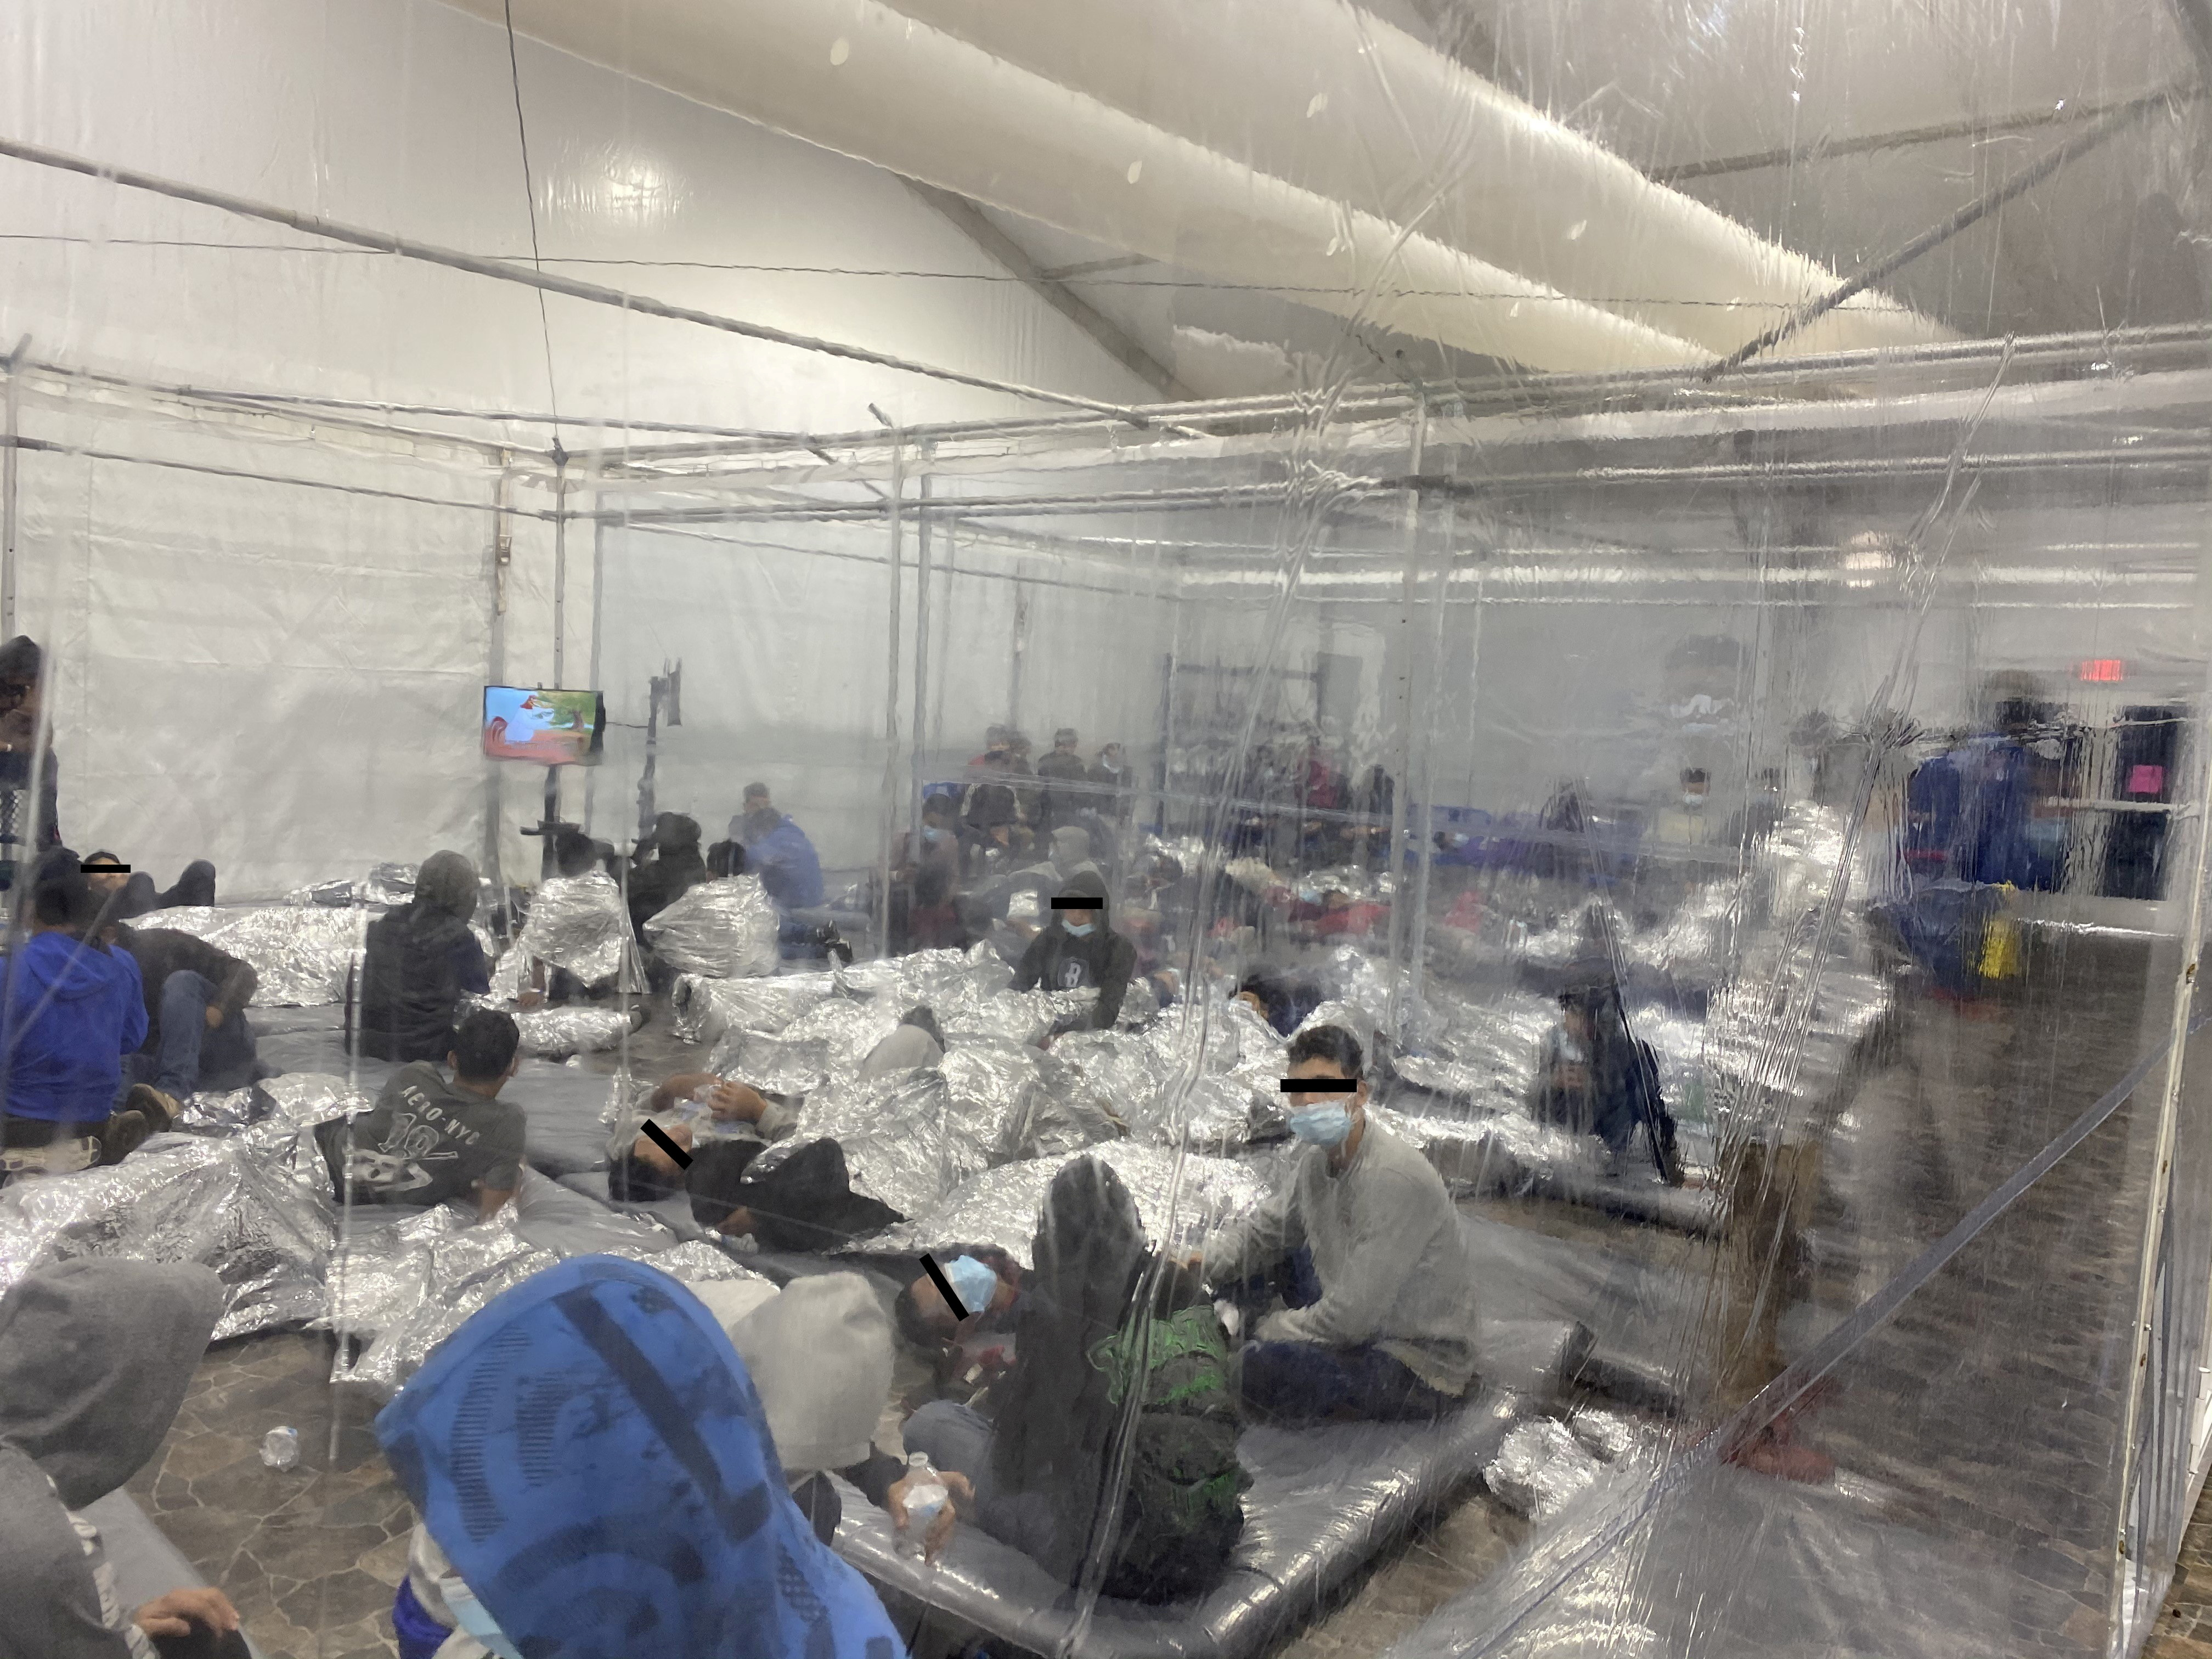 A photograph released by the office of Rep. Henry Cuellar, D-Texas, shows migrants crowded in a room with walls of plastic sheeting at the U.S. Customs and Border Protection temporary processing center in Donna, Texas on March 22, 2021 (Handout via Reuters).